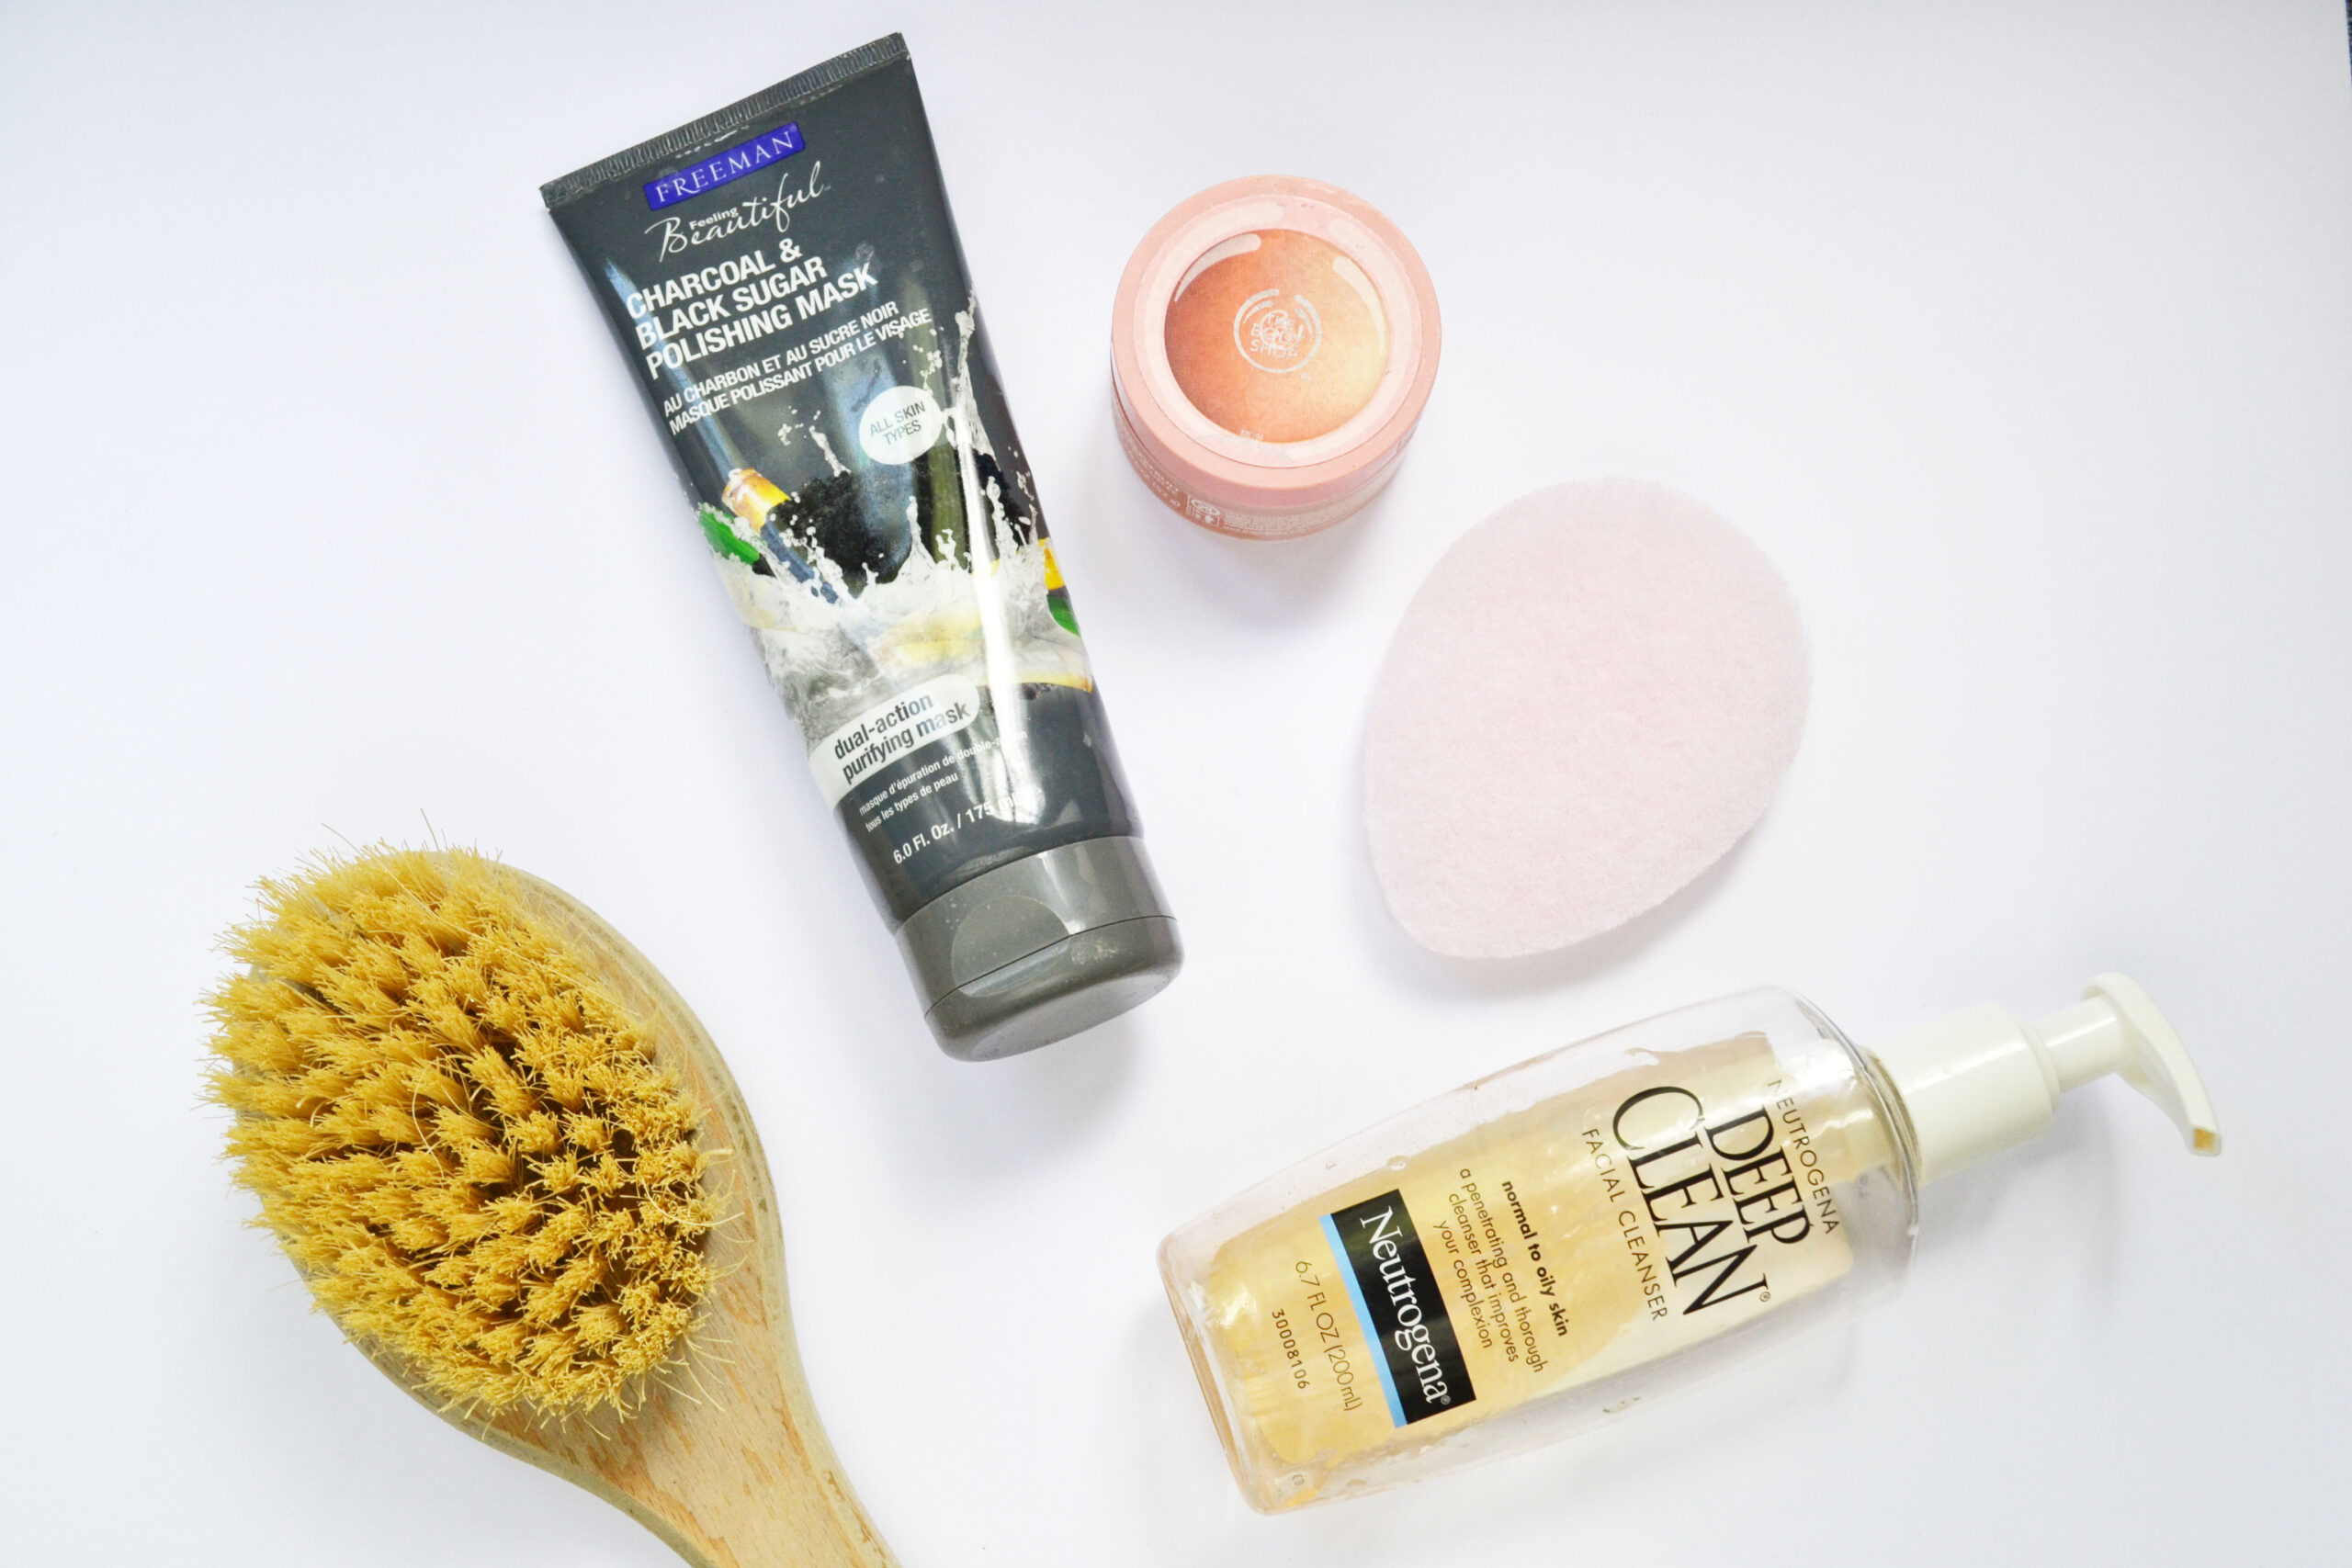 exfoliating brush, freemans mask, exfoliating face mask, freemans, the body shop exfoliation cream, neutrogena, neutrogena cleanser, beauty, flatlay,